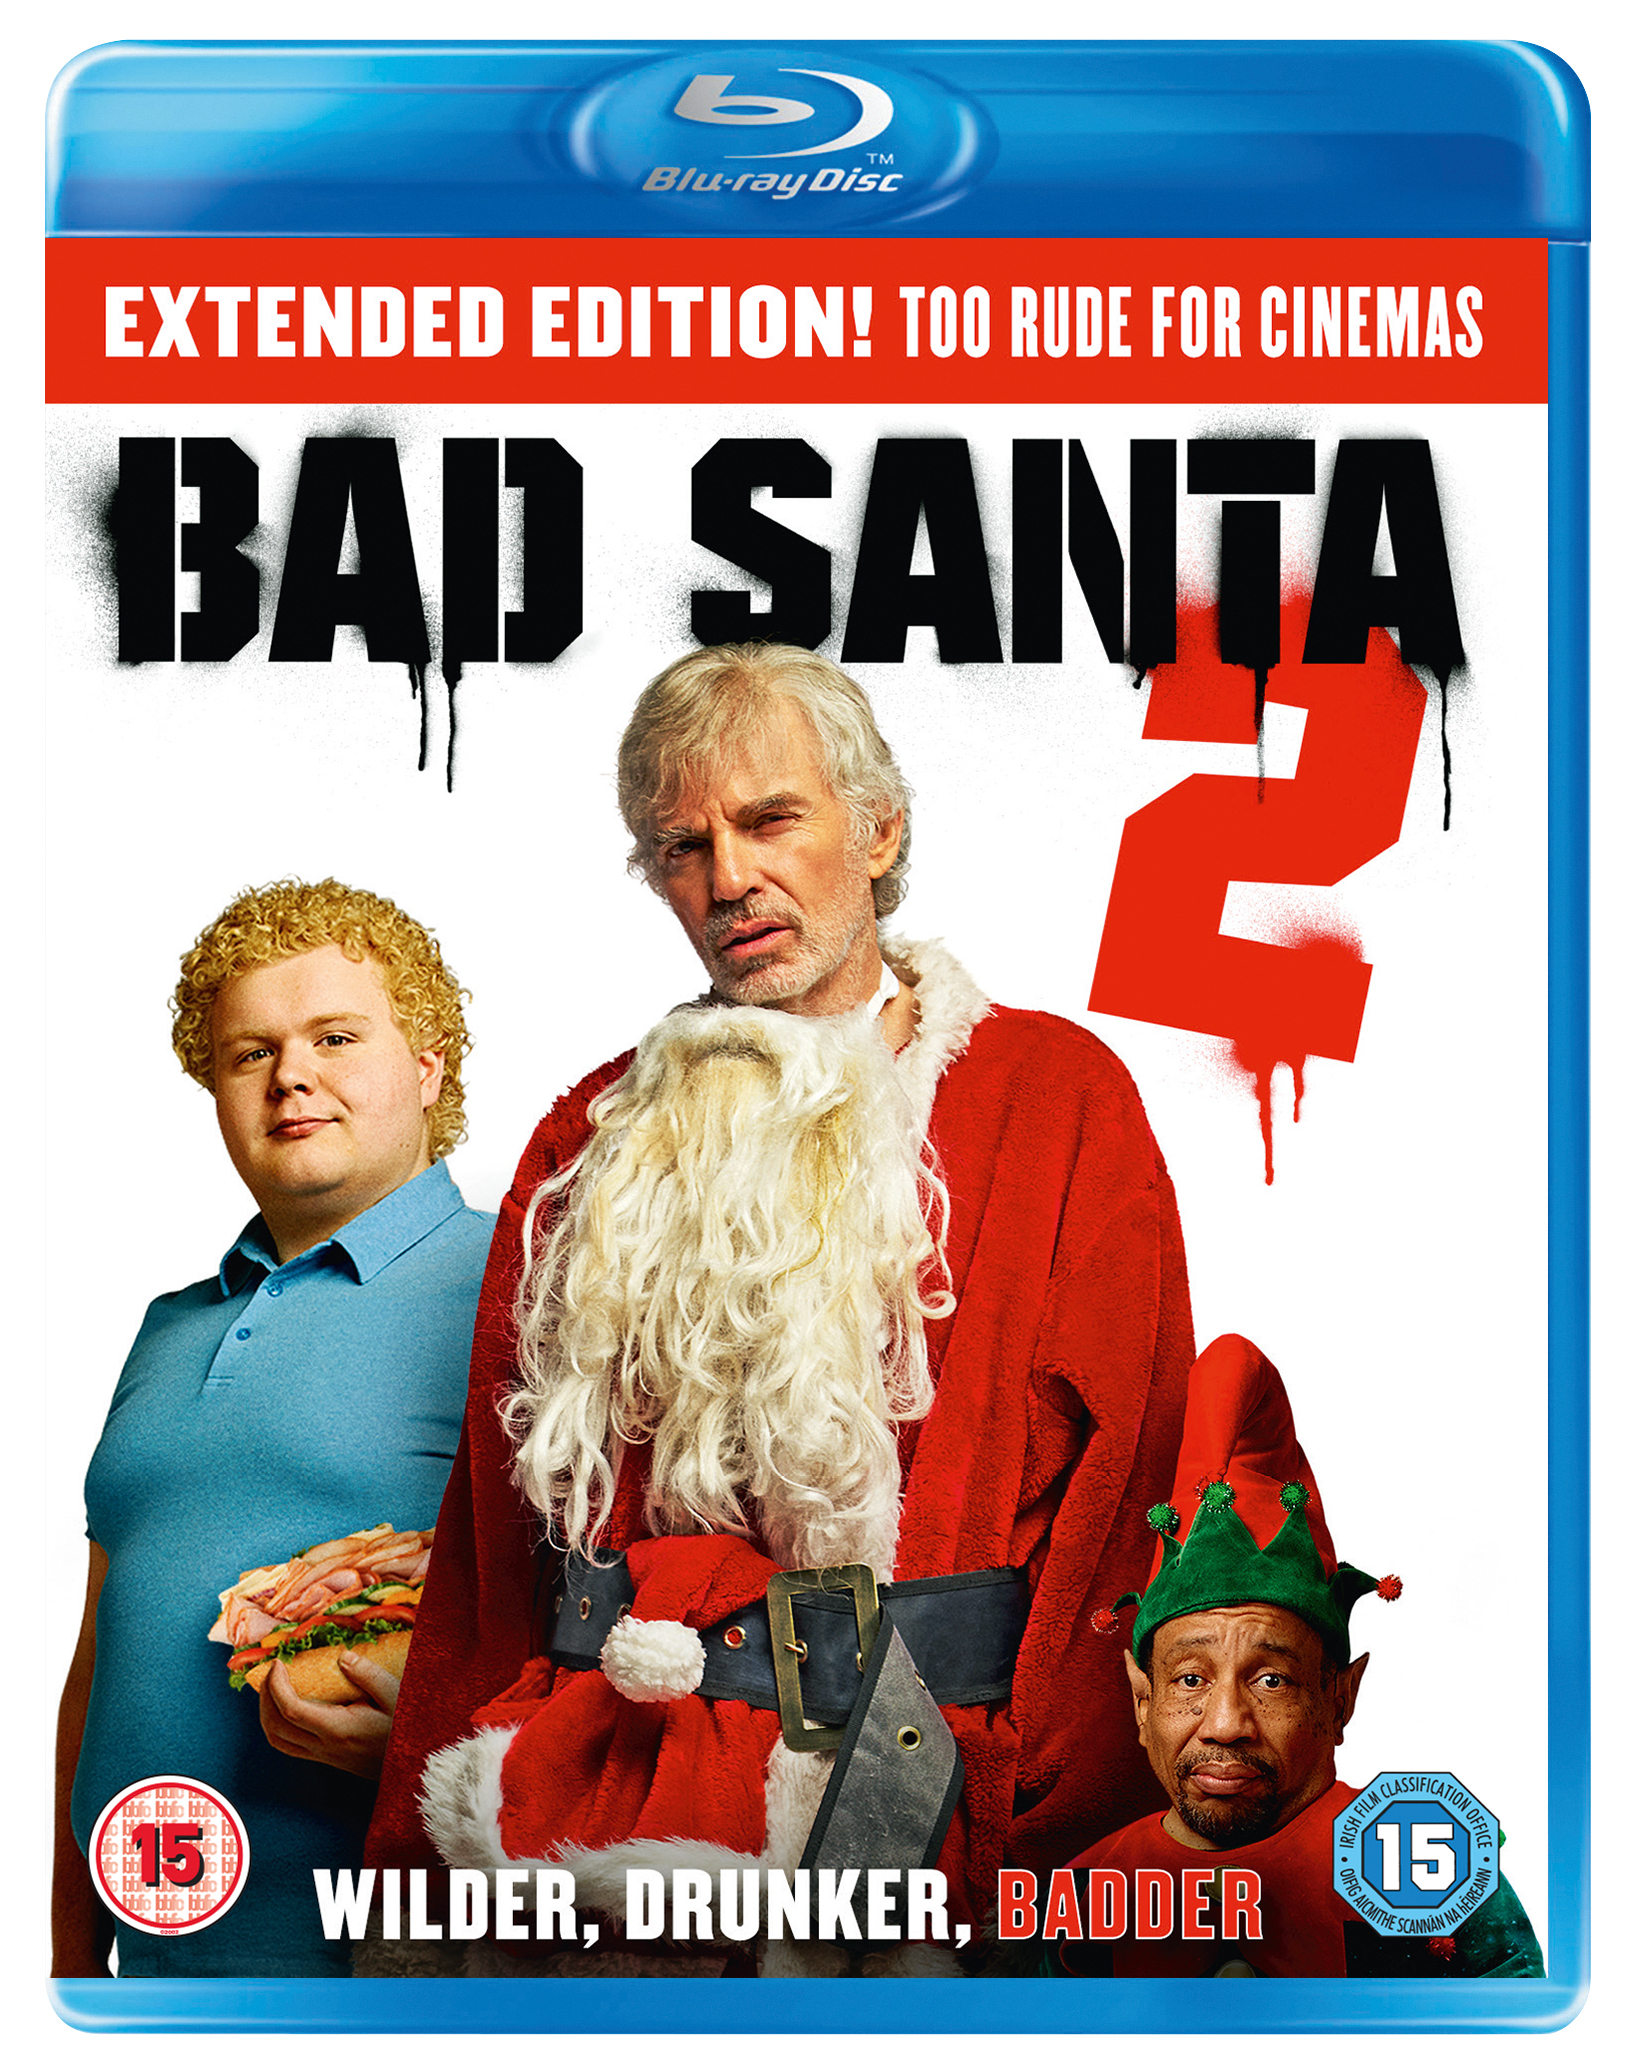 boom competitions - win Bad Santa 2 on Blu-ray